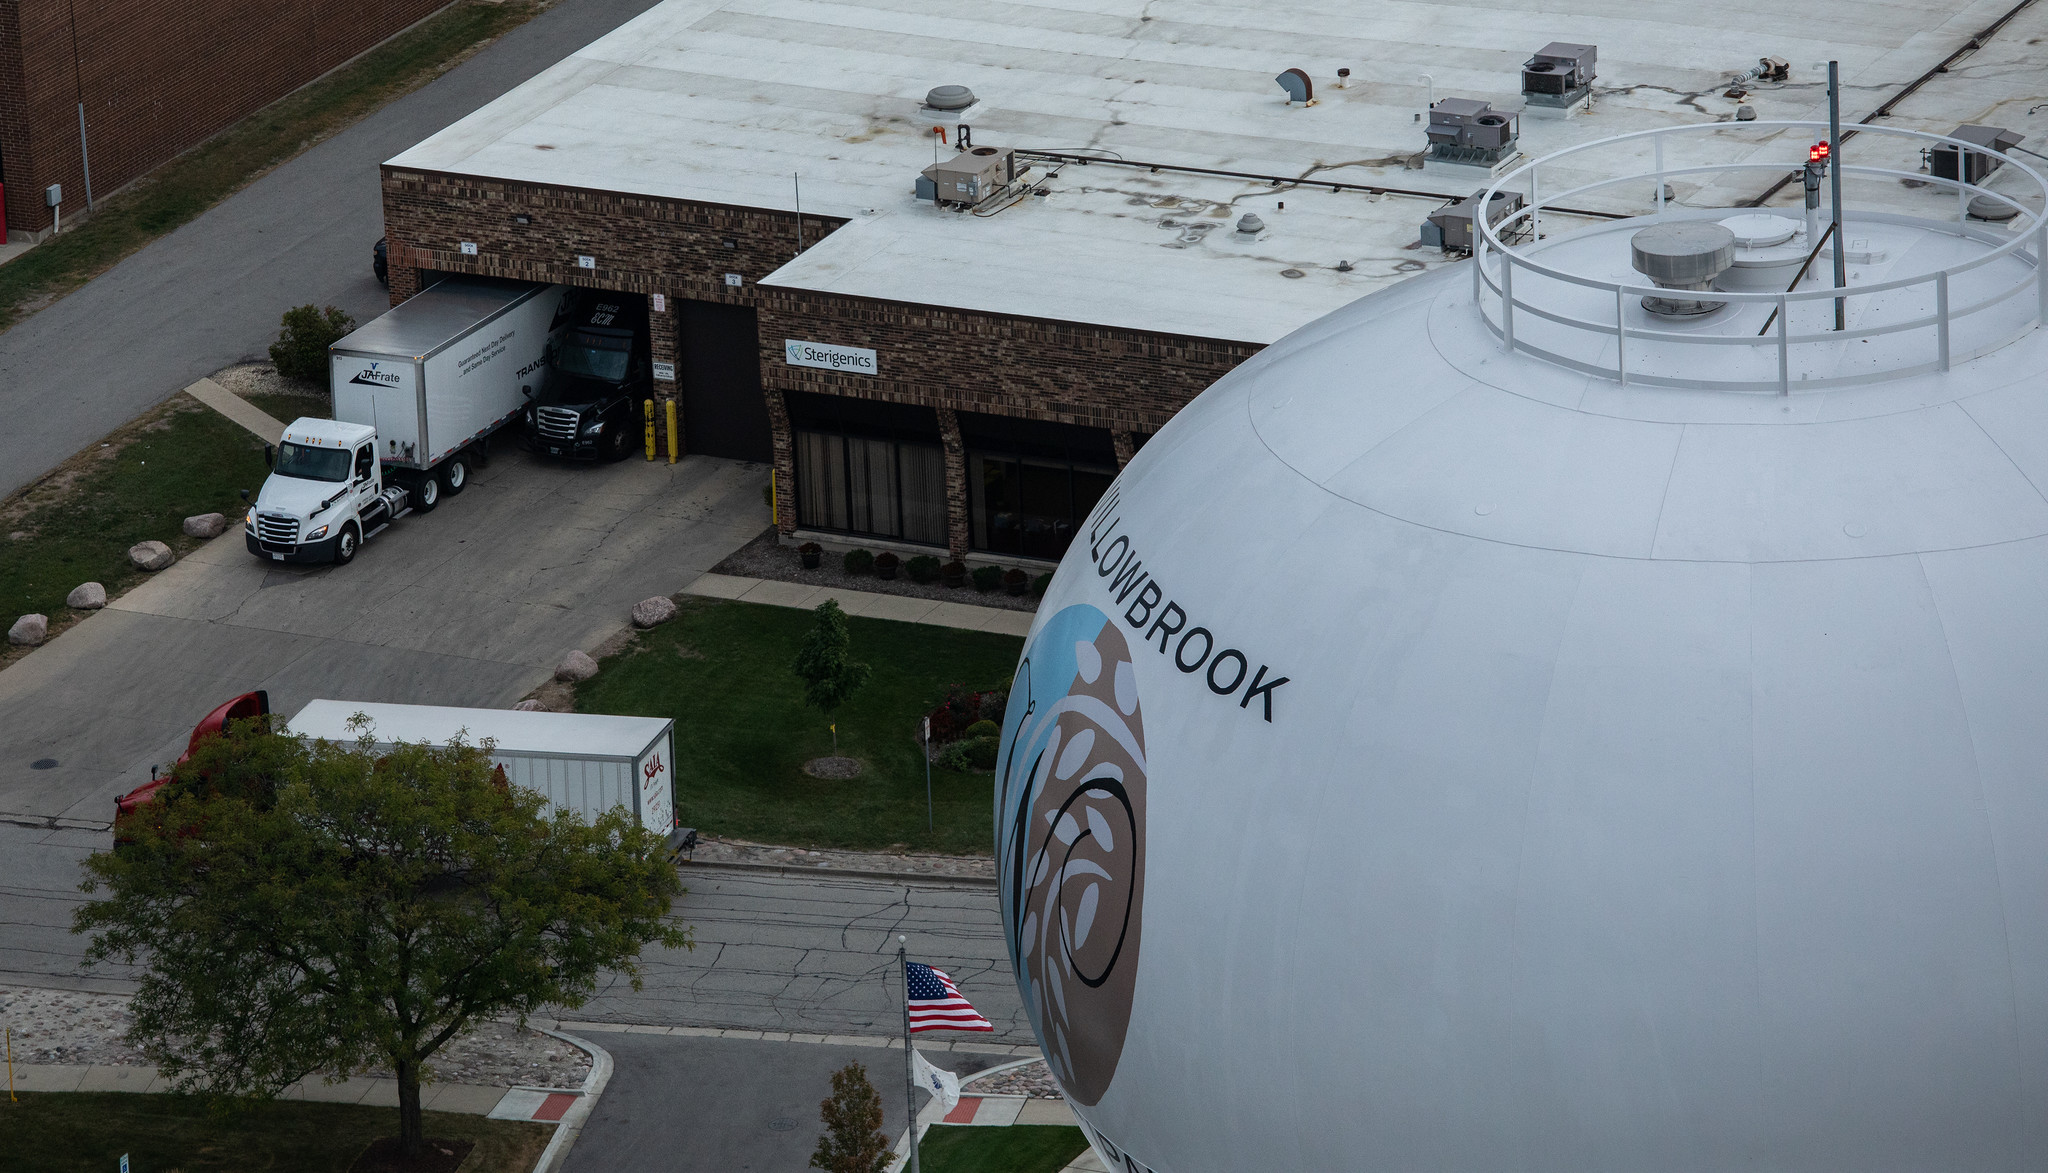 Air testing after Sterigenics was shut down shows 'rapid drop' in cancer-causing gas in Willowbrook, EPA official says